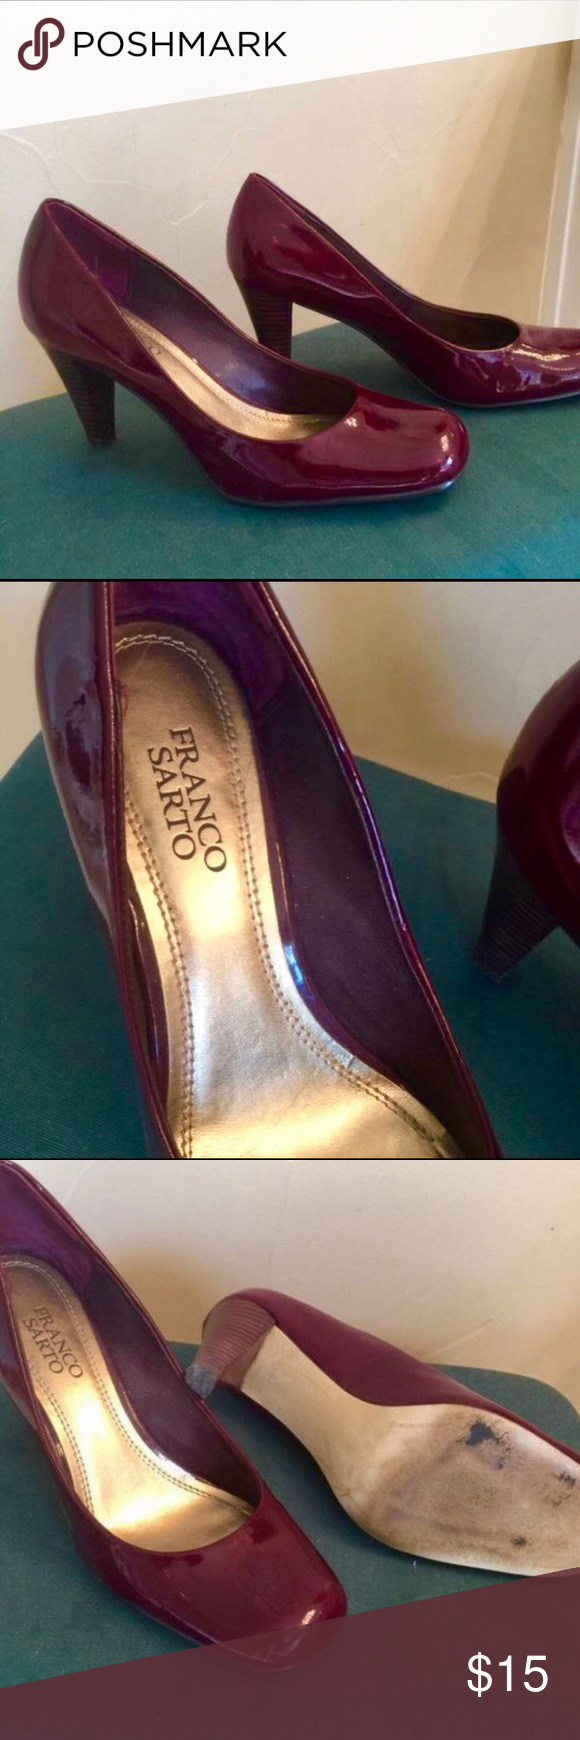 Franco Sarto pumps Franco Sarto Cranberry Patent Leather Pumps size 8. Great condition and worn just a couple times by an actress on set. I'm a professional makeup artist and wardrobe stylist for tv and film. I'm clearing out my prop closets at a savings to you. Franco Sarto Shoes Heels